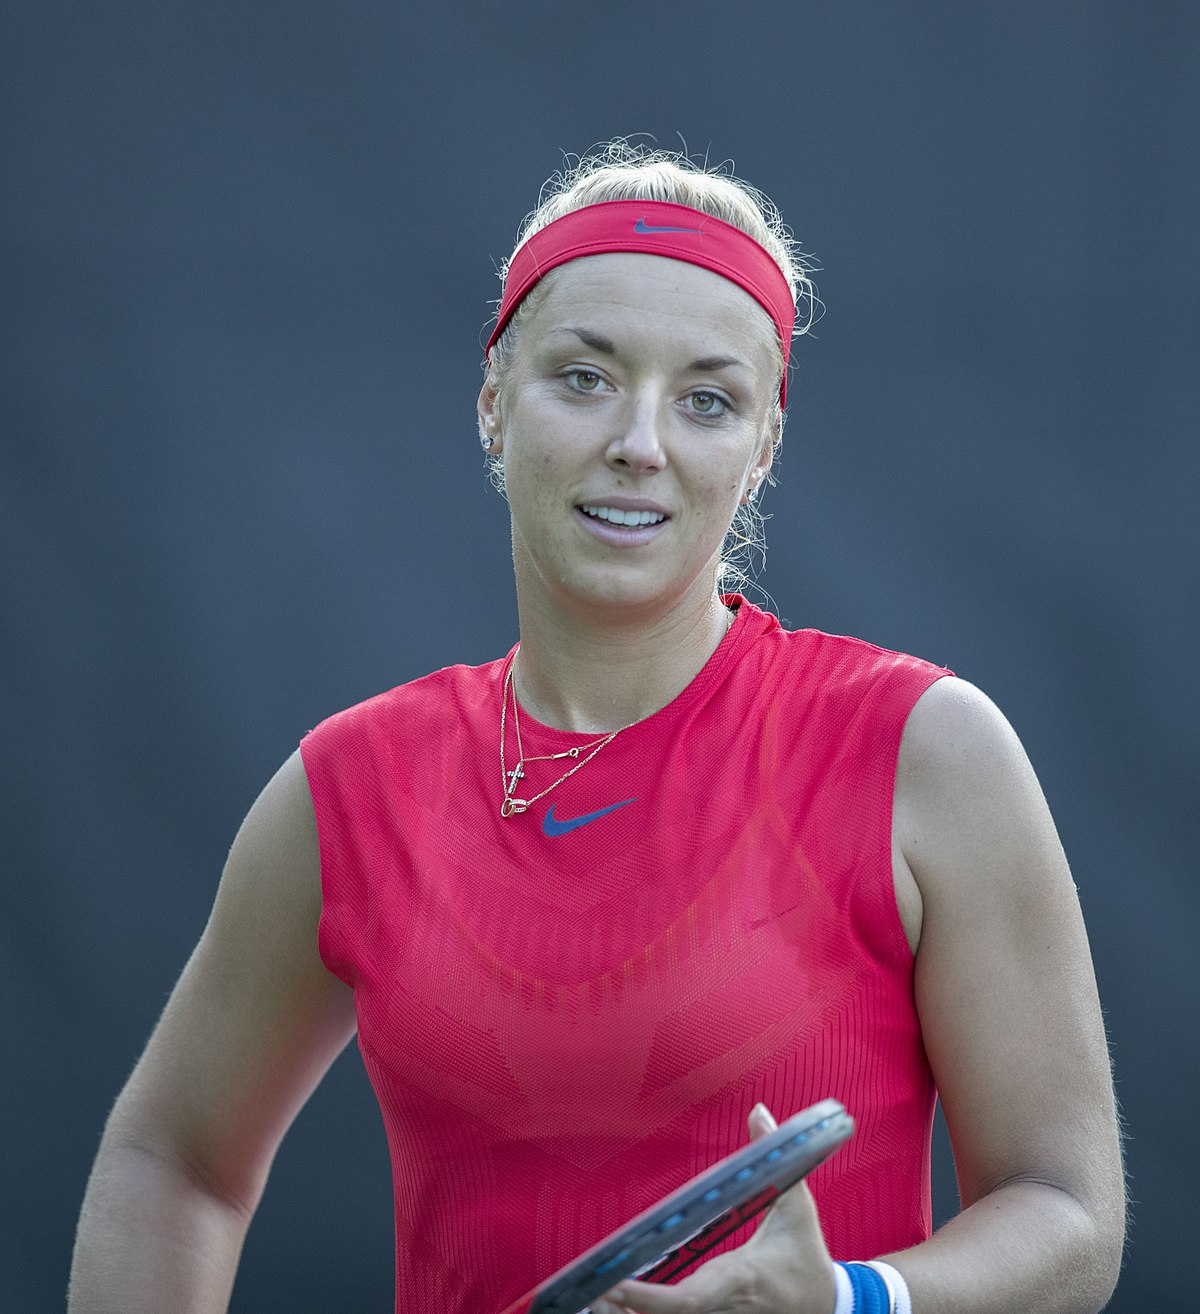 Sabine Lisicki Nude Photos 6